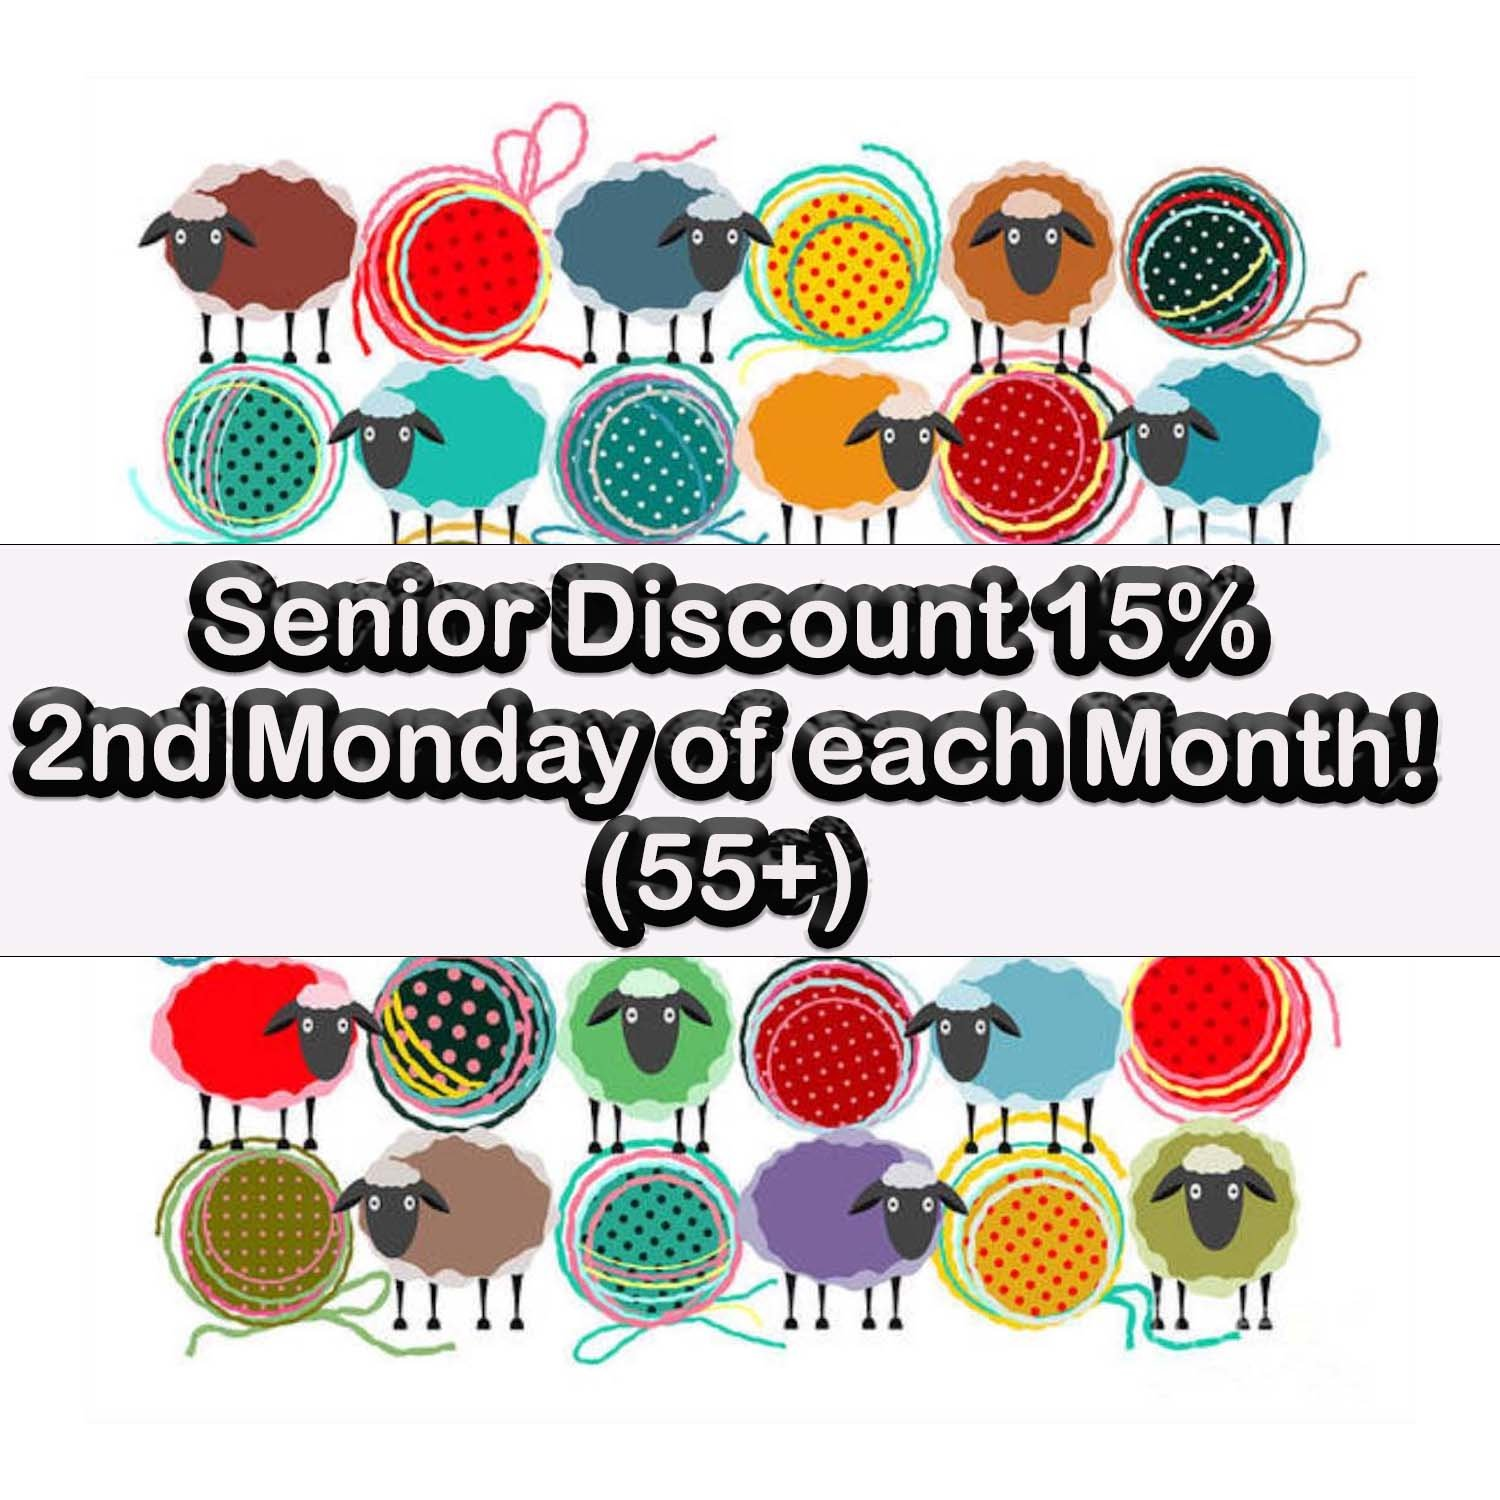 15% Senior Discount 2nd Monday of Each Month